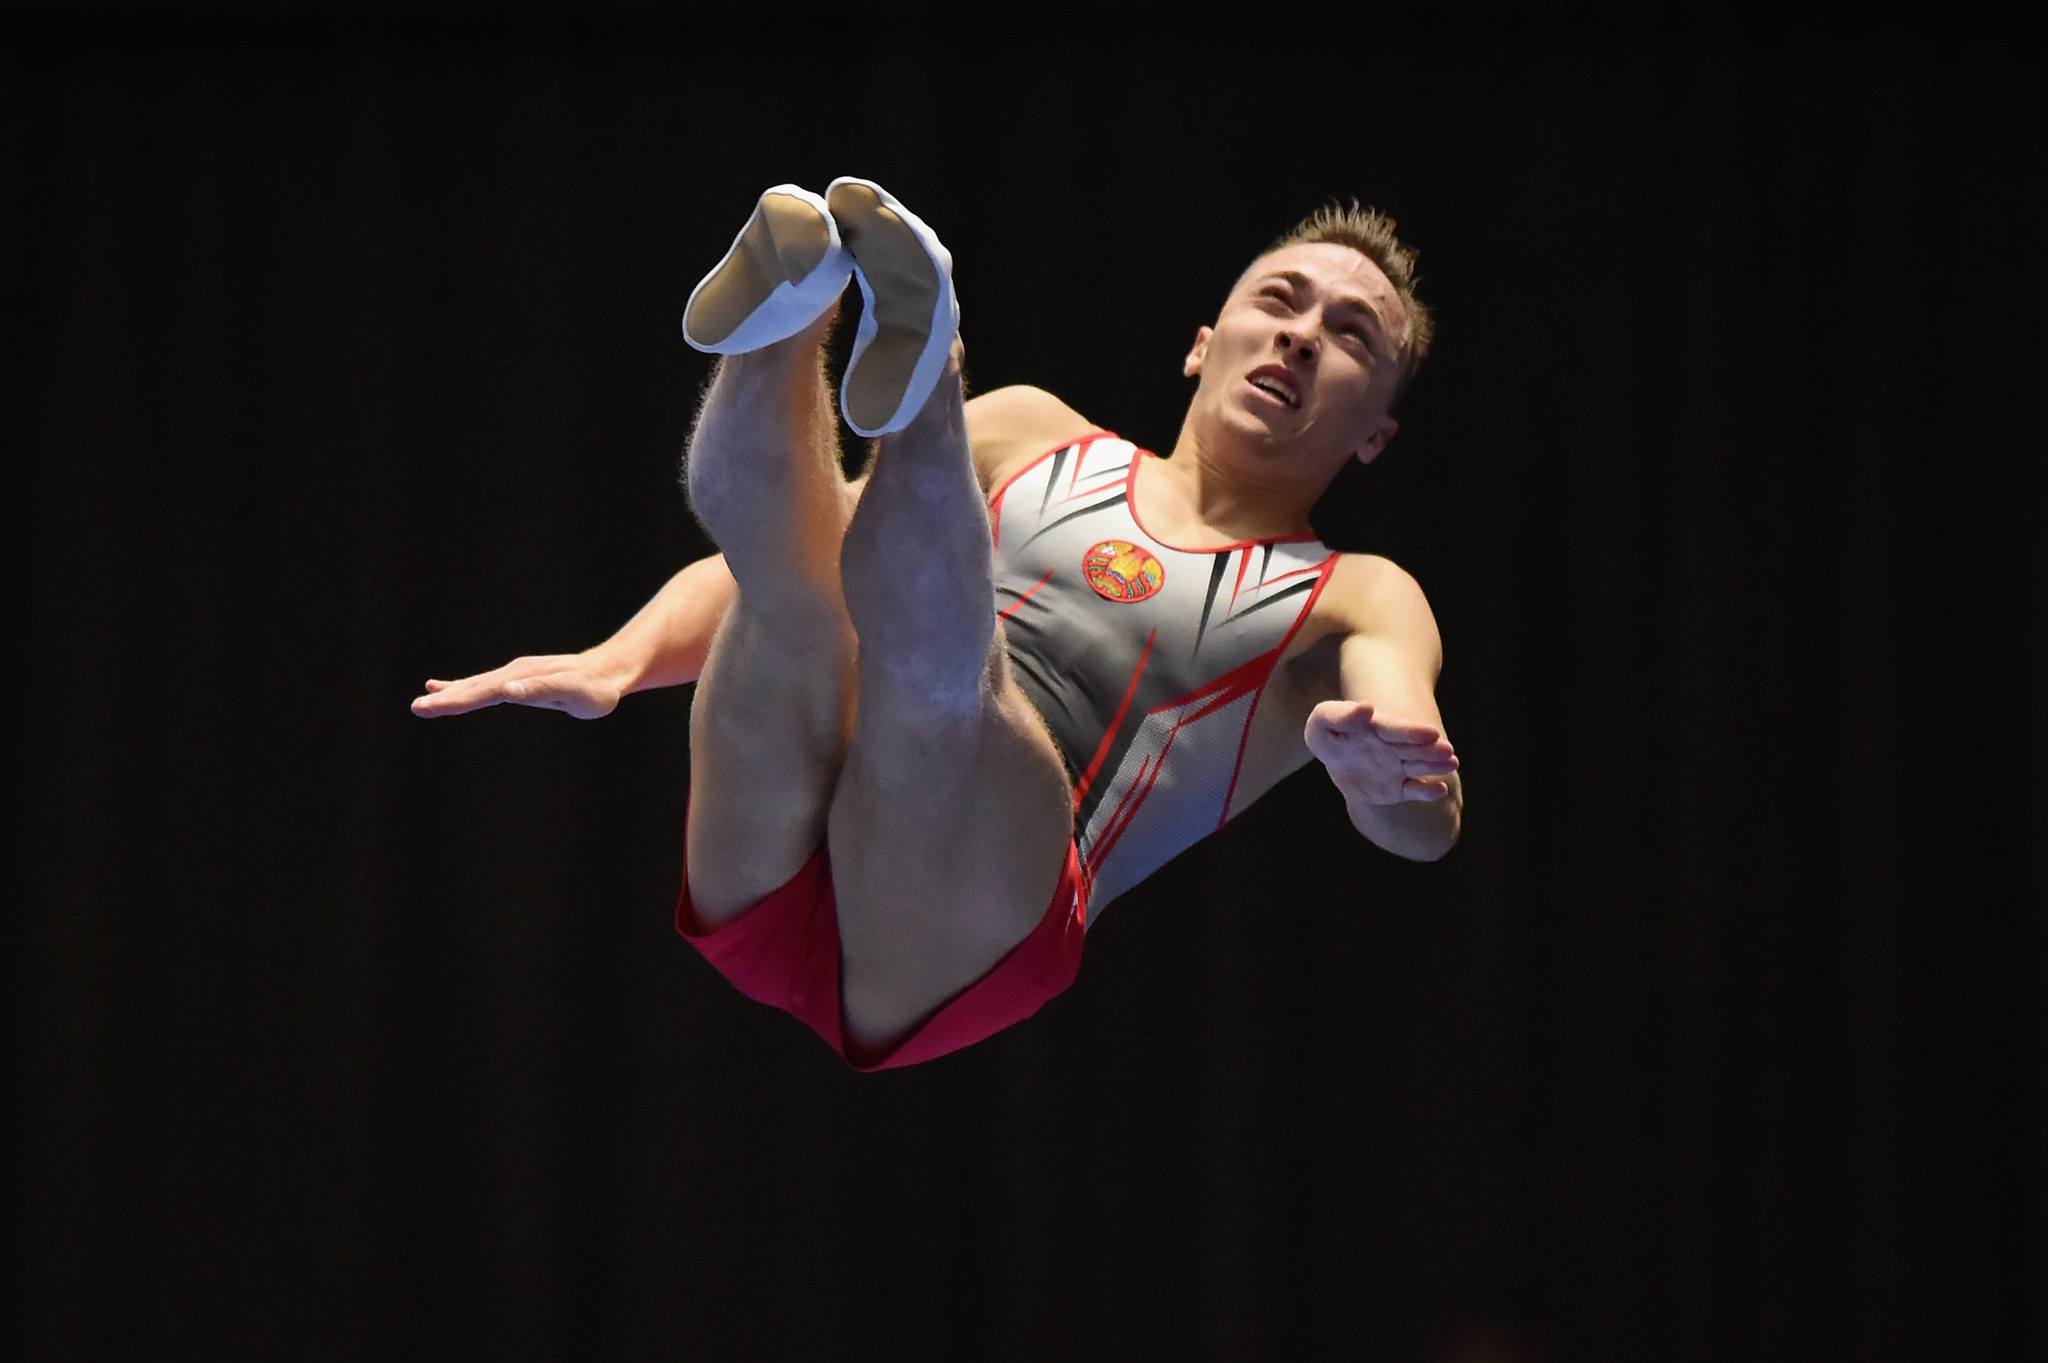 Melnik takes individual gold to deny Olympic champion Hancharou at FIG Trampoline World Cup